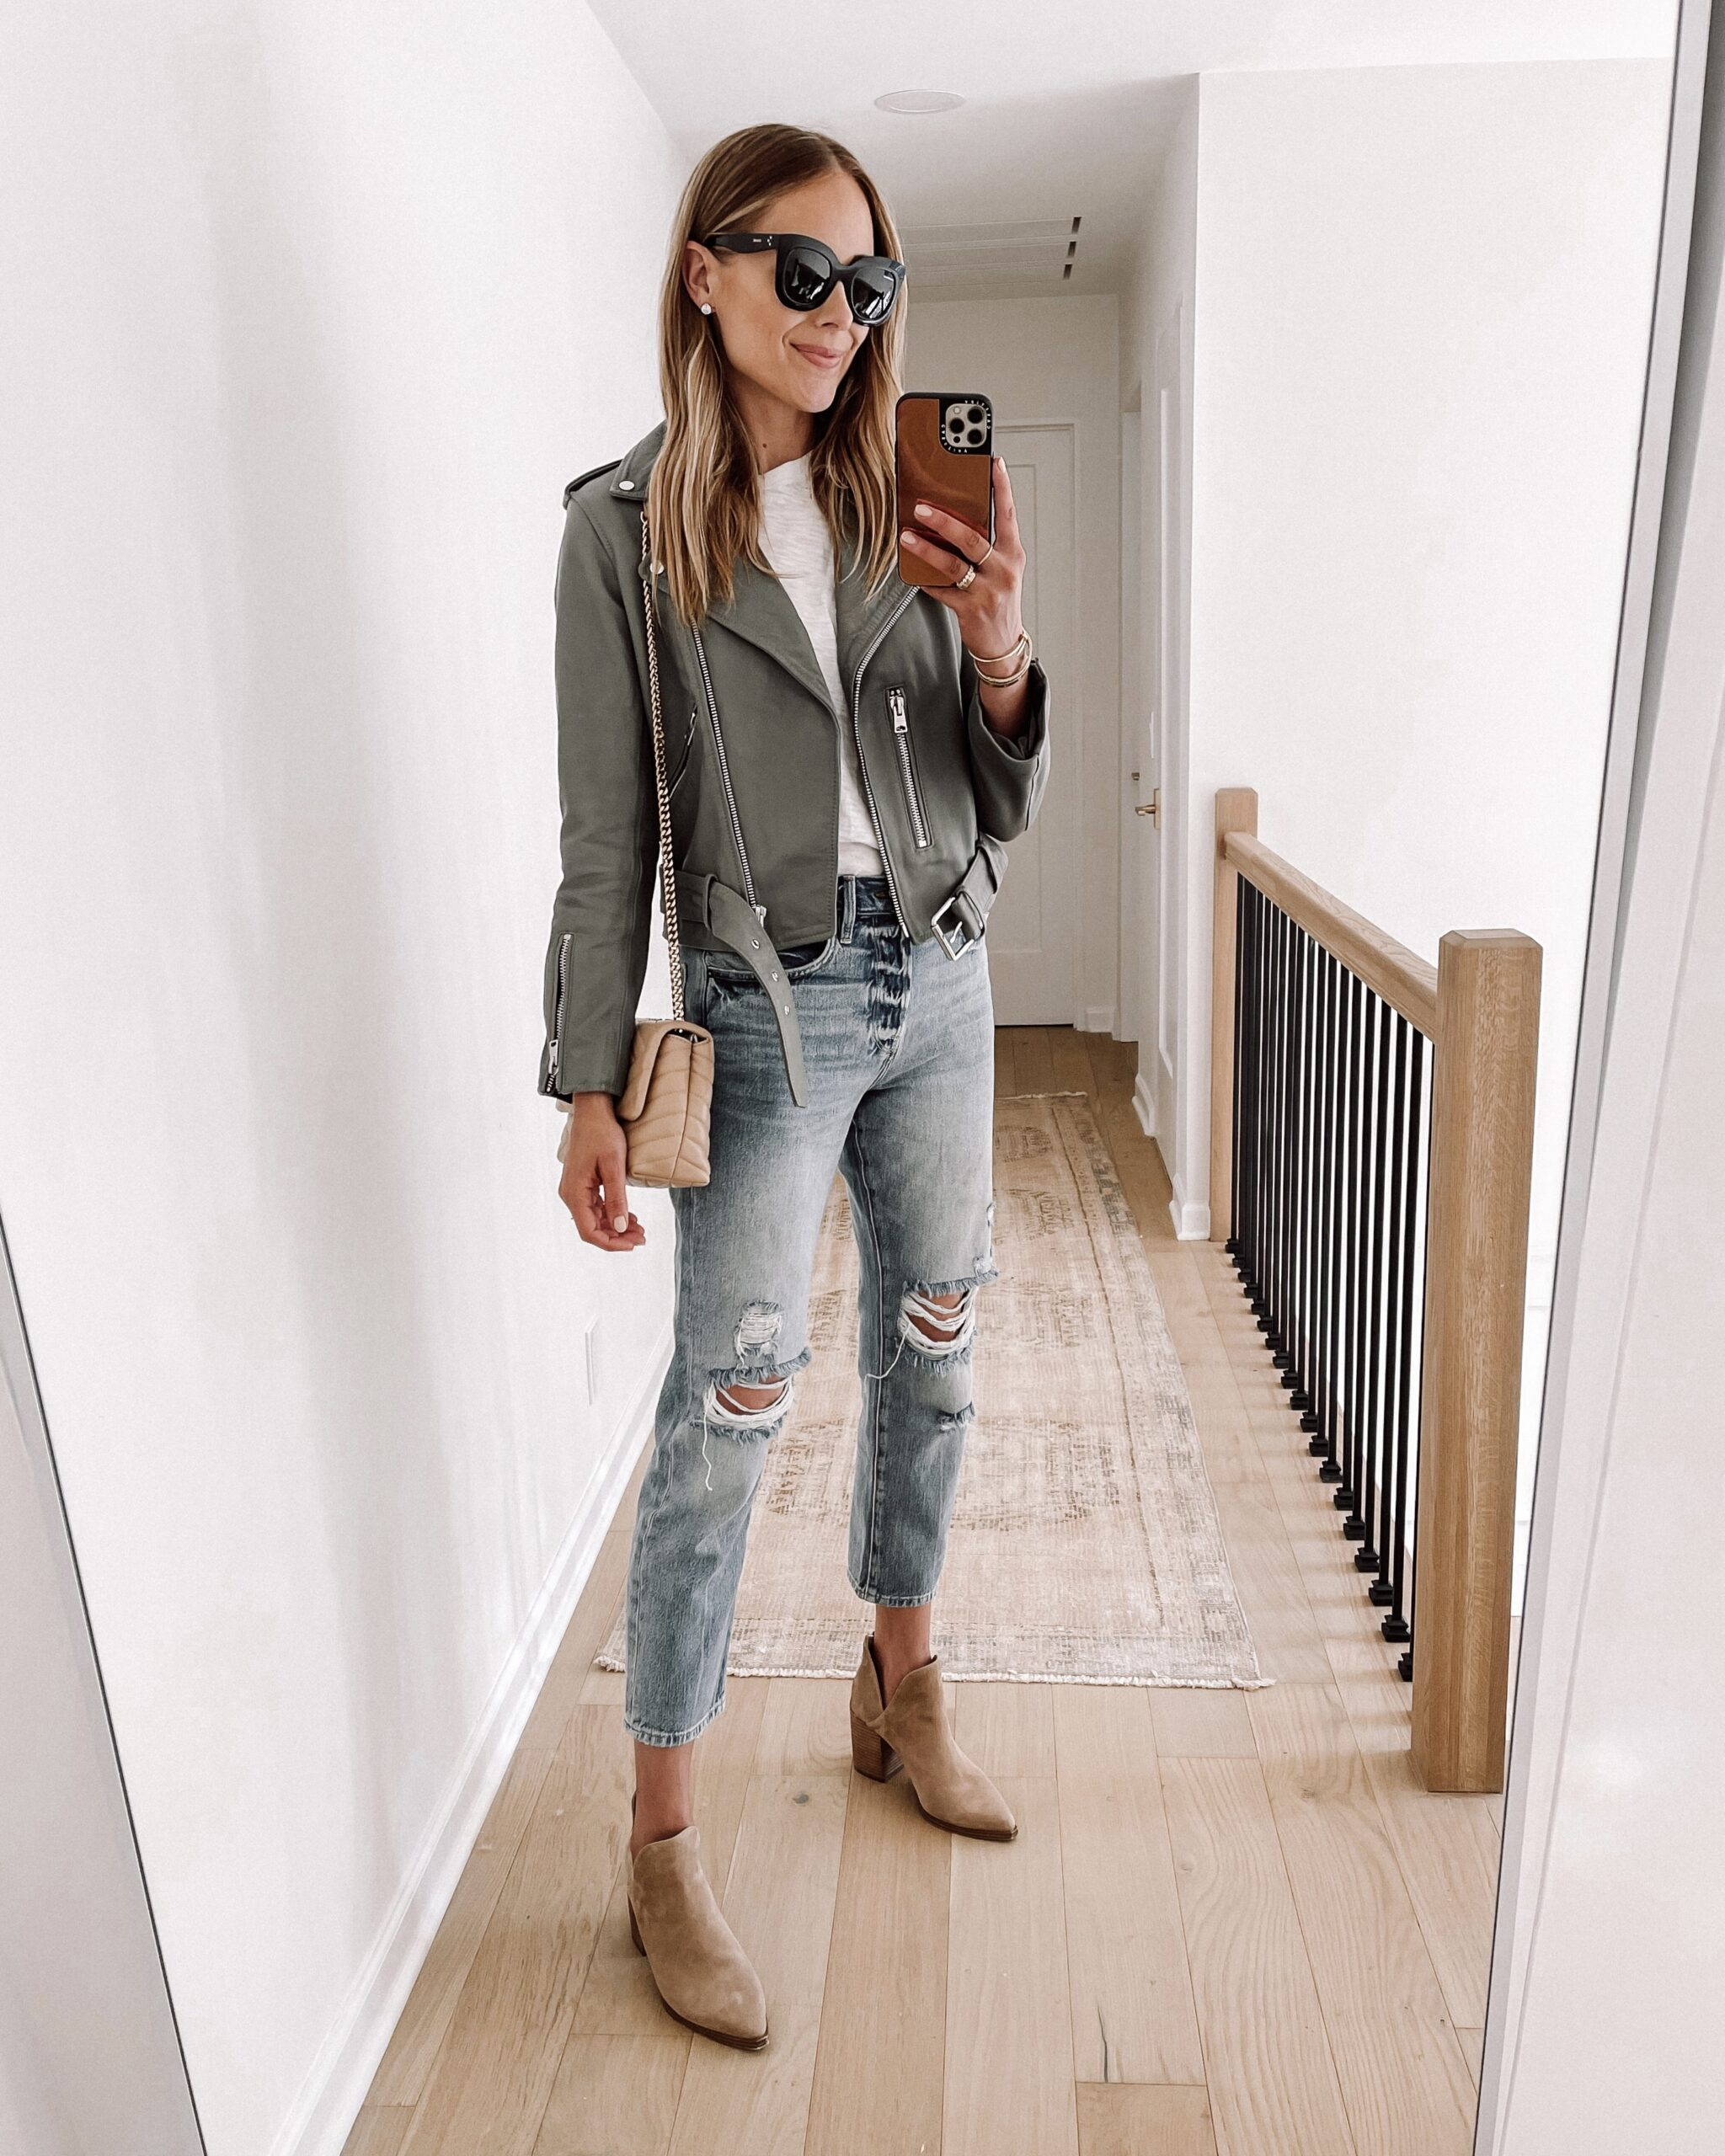 Fashion Jackson Wearing Allsaints Green Leather Jacket White Tshirt Frame Ripped Jeans Tan Suede Booties Womens Fall Shoe Trends